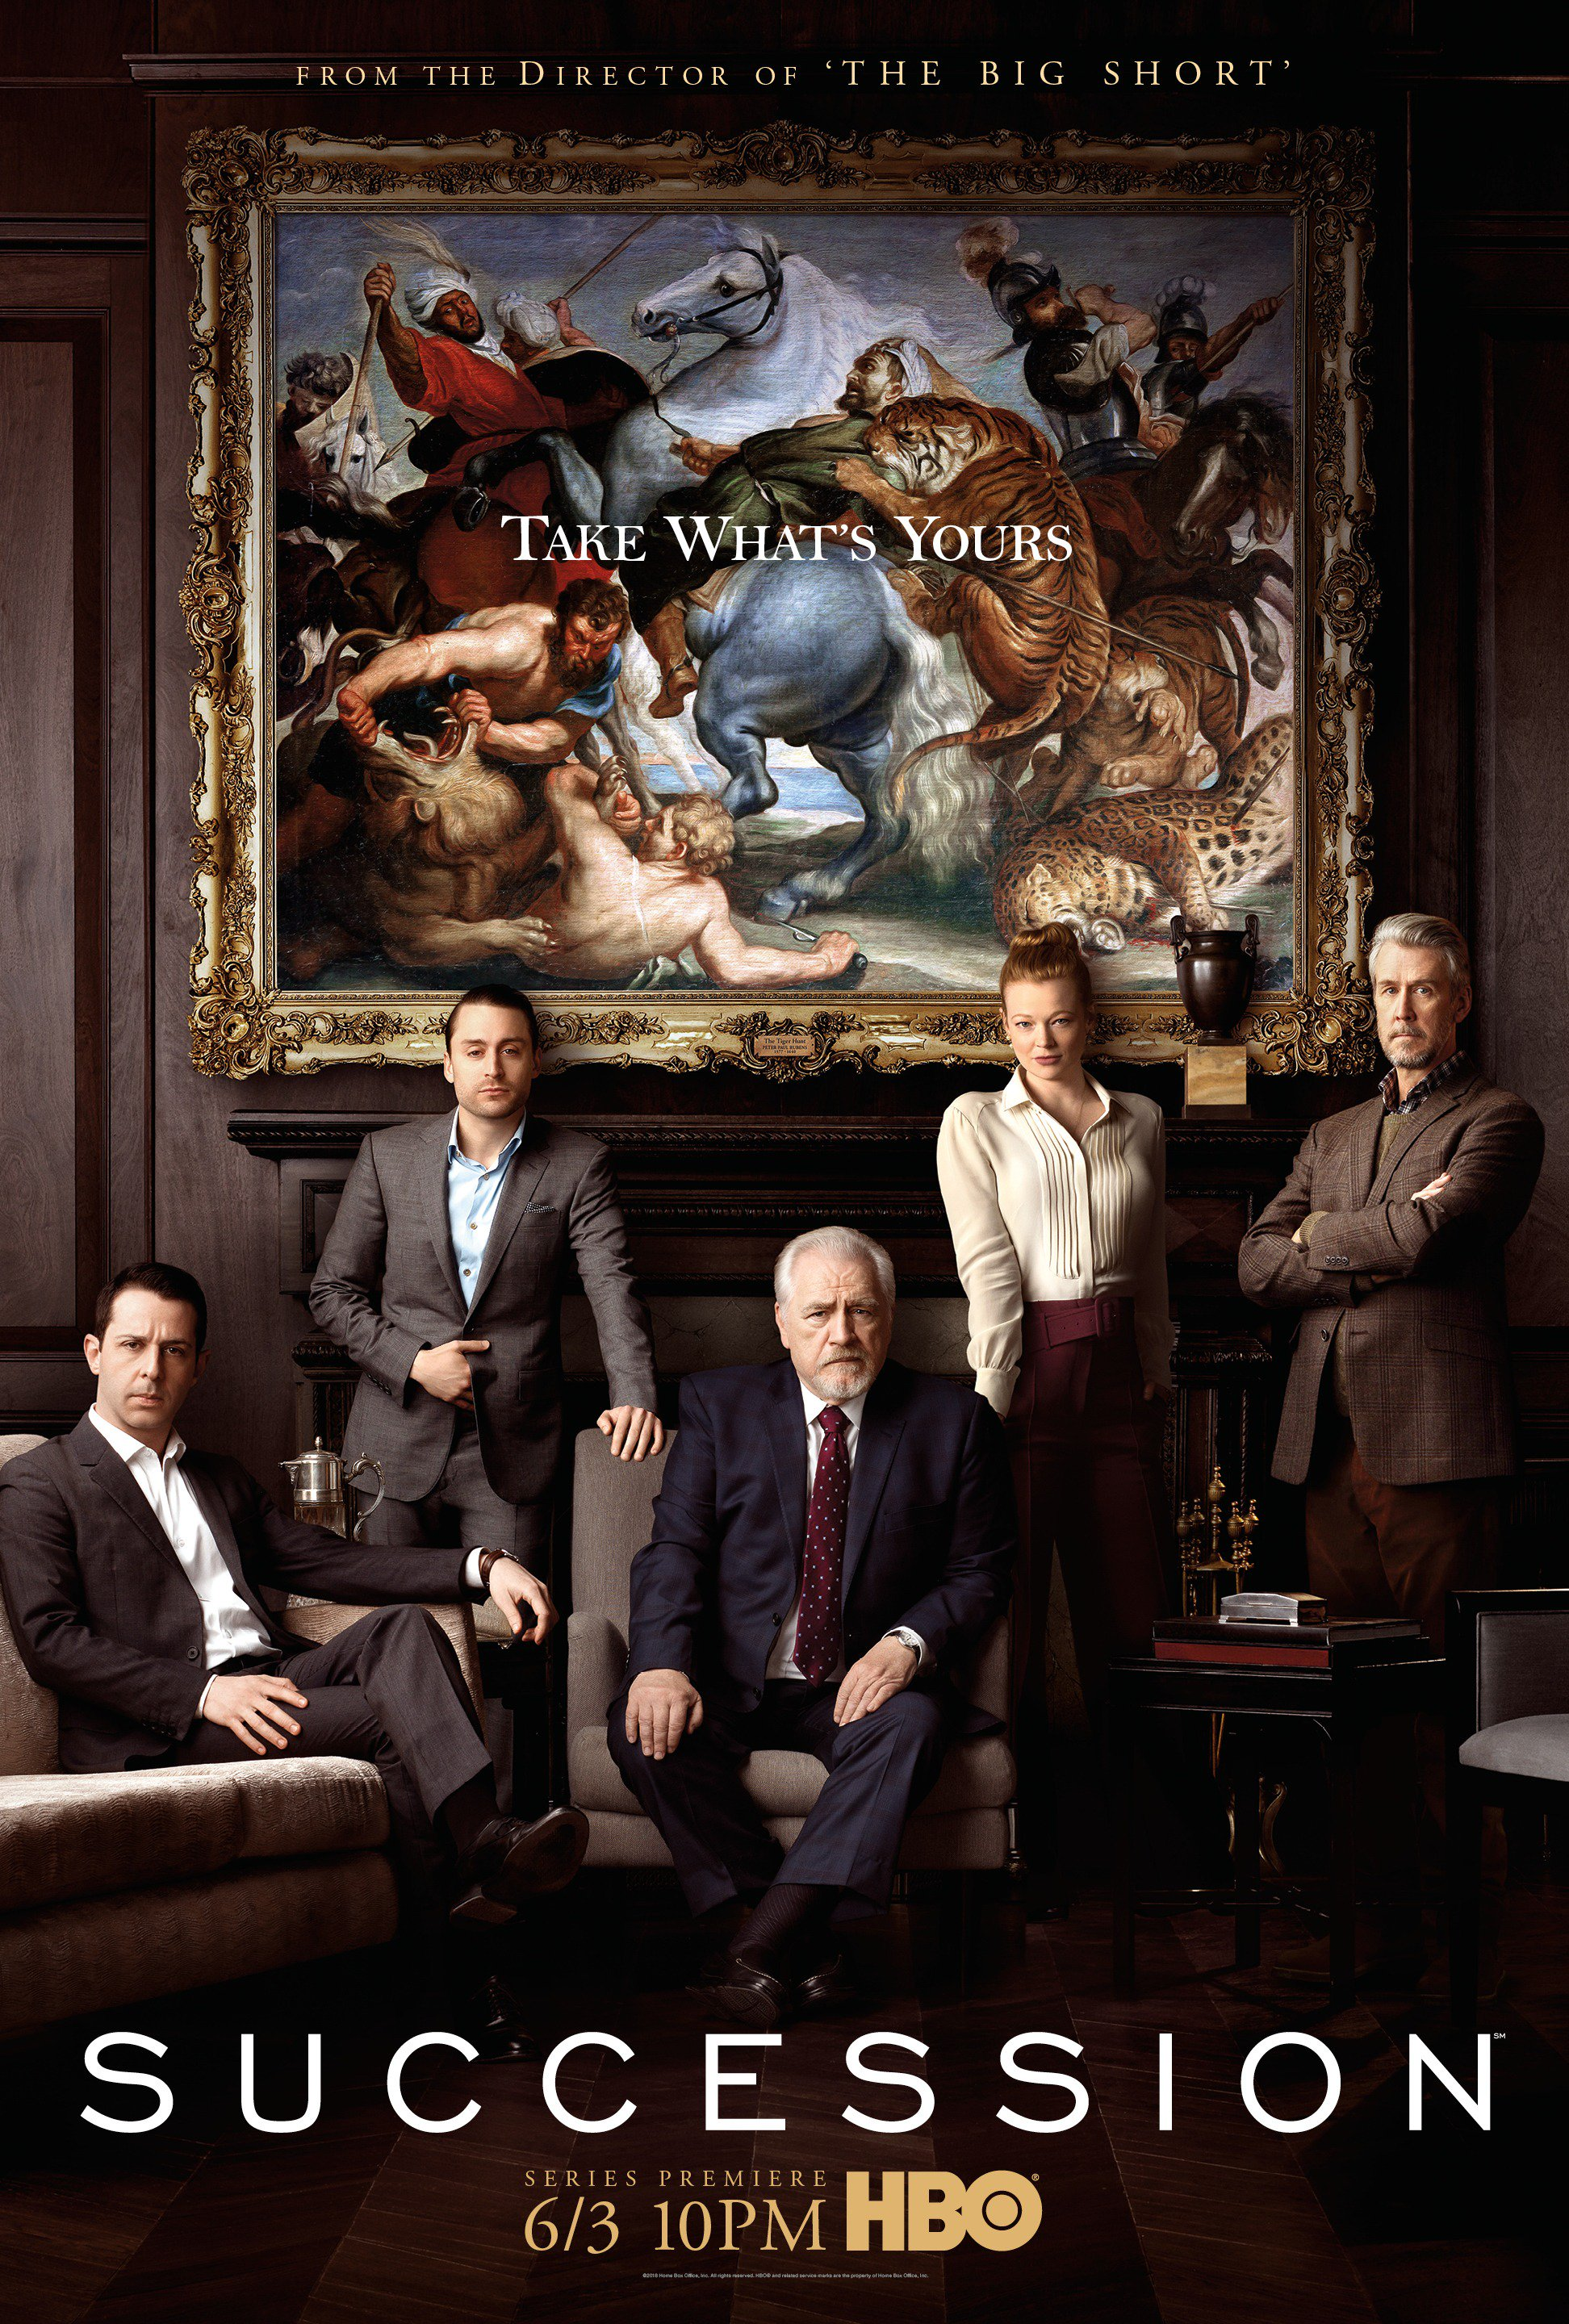 SUCCESSION for HBO